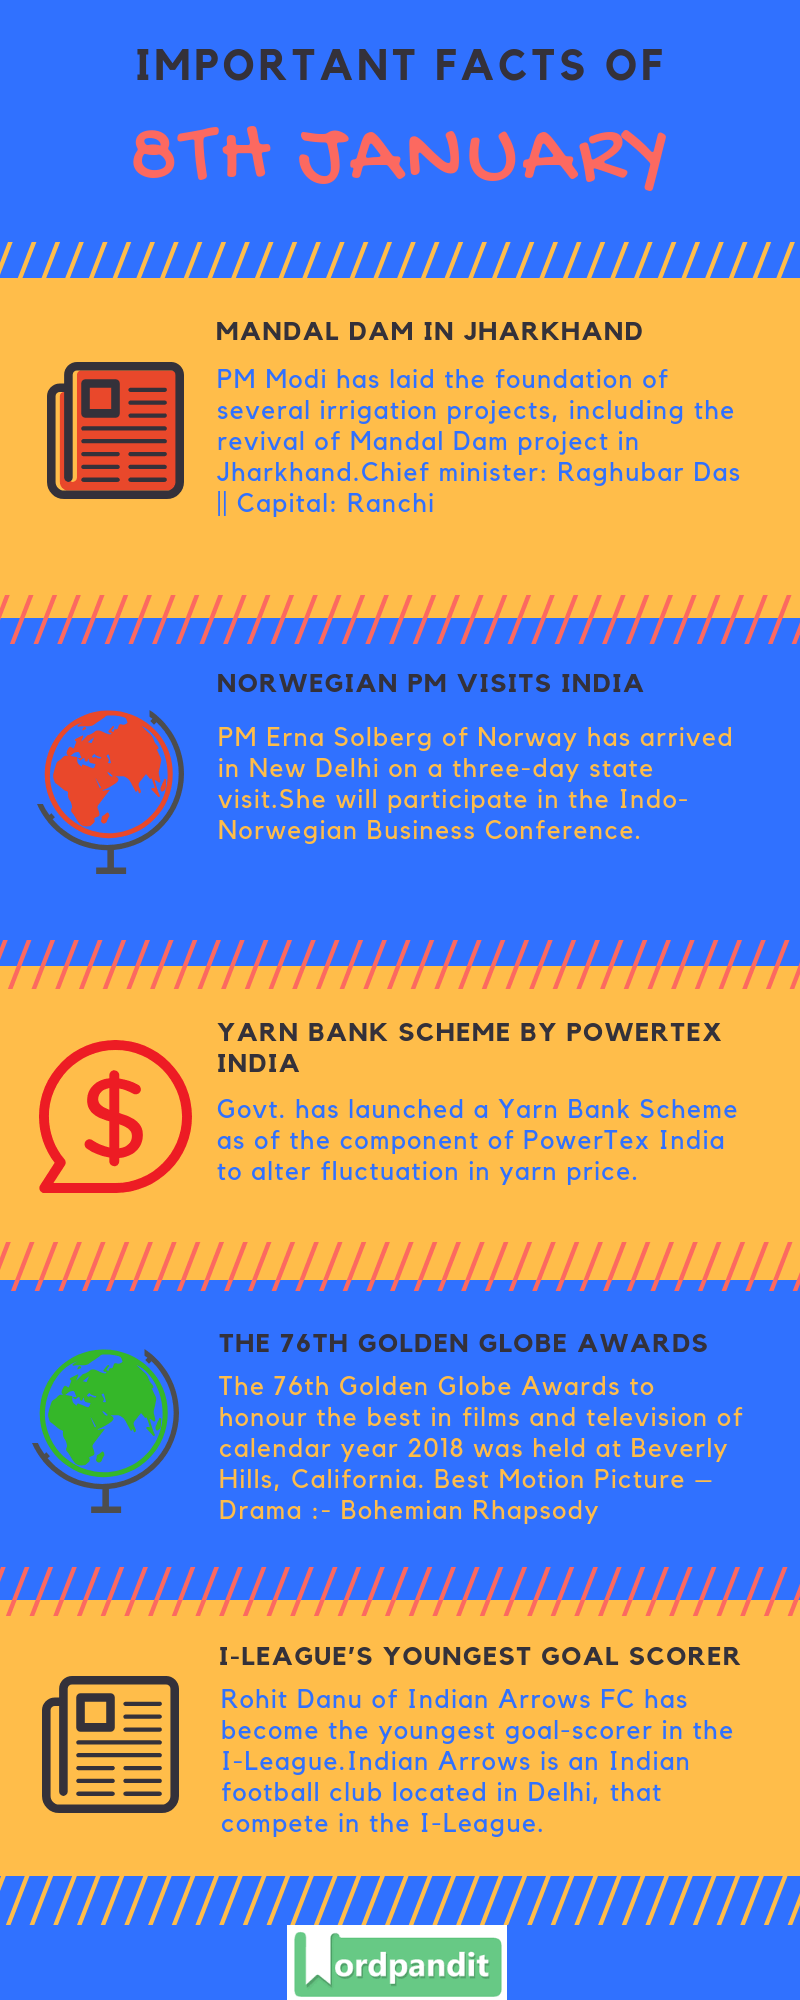 Daily Current Affairs 8 January 2019 Current Affairs Quiz 8 January 2019 Current Affairs Infographic